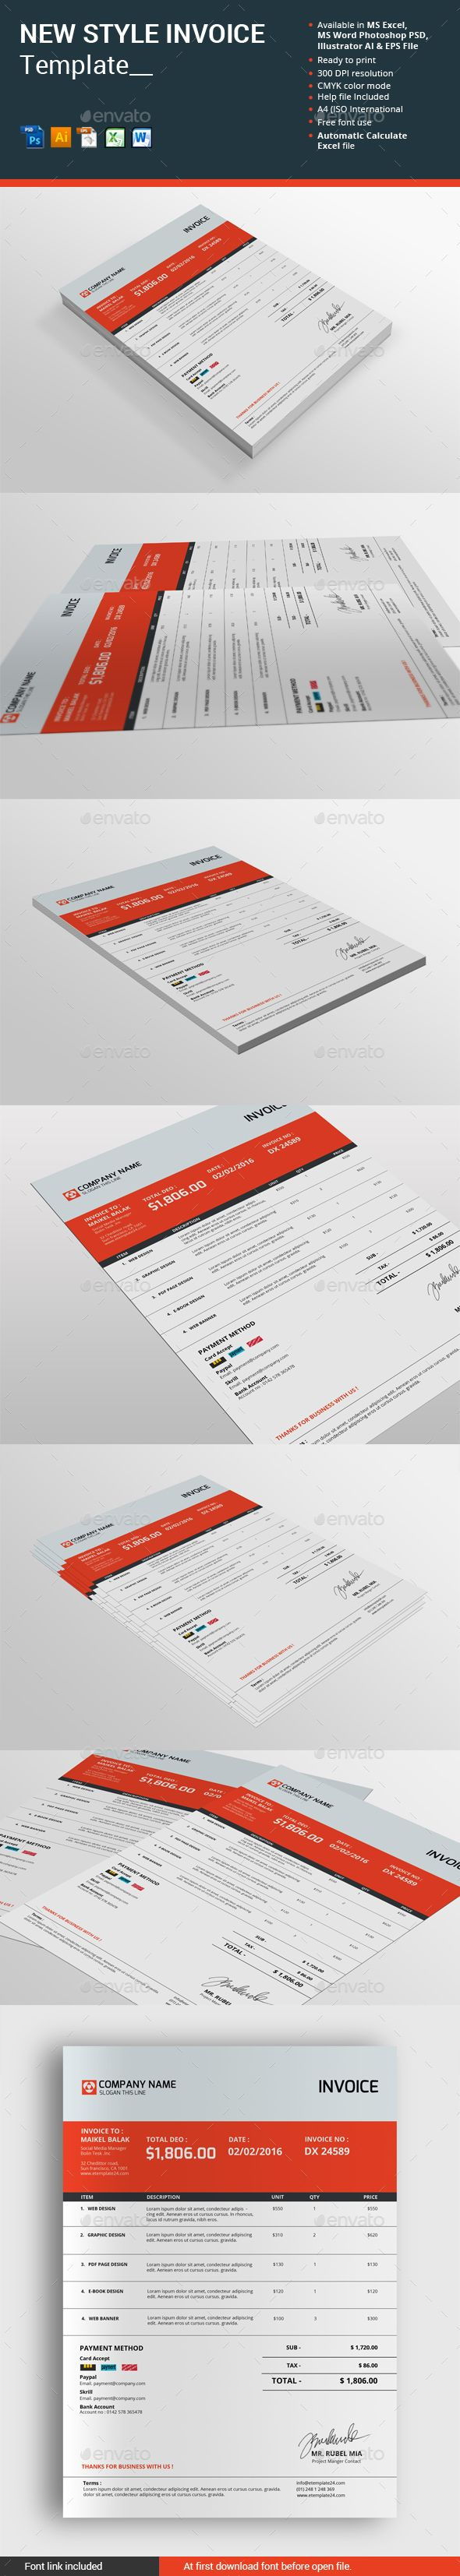 24 best design | invoices images on pinterest | invoice template, Invoice templates